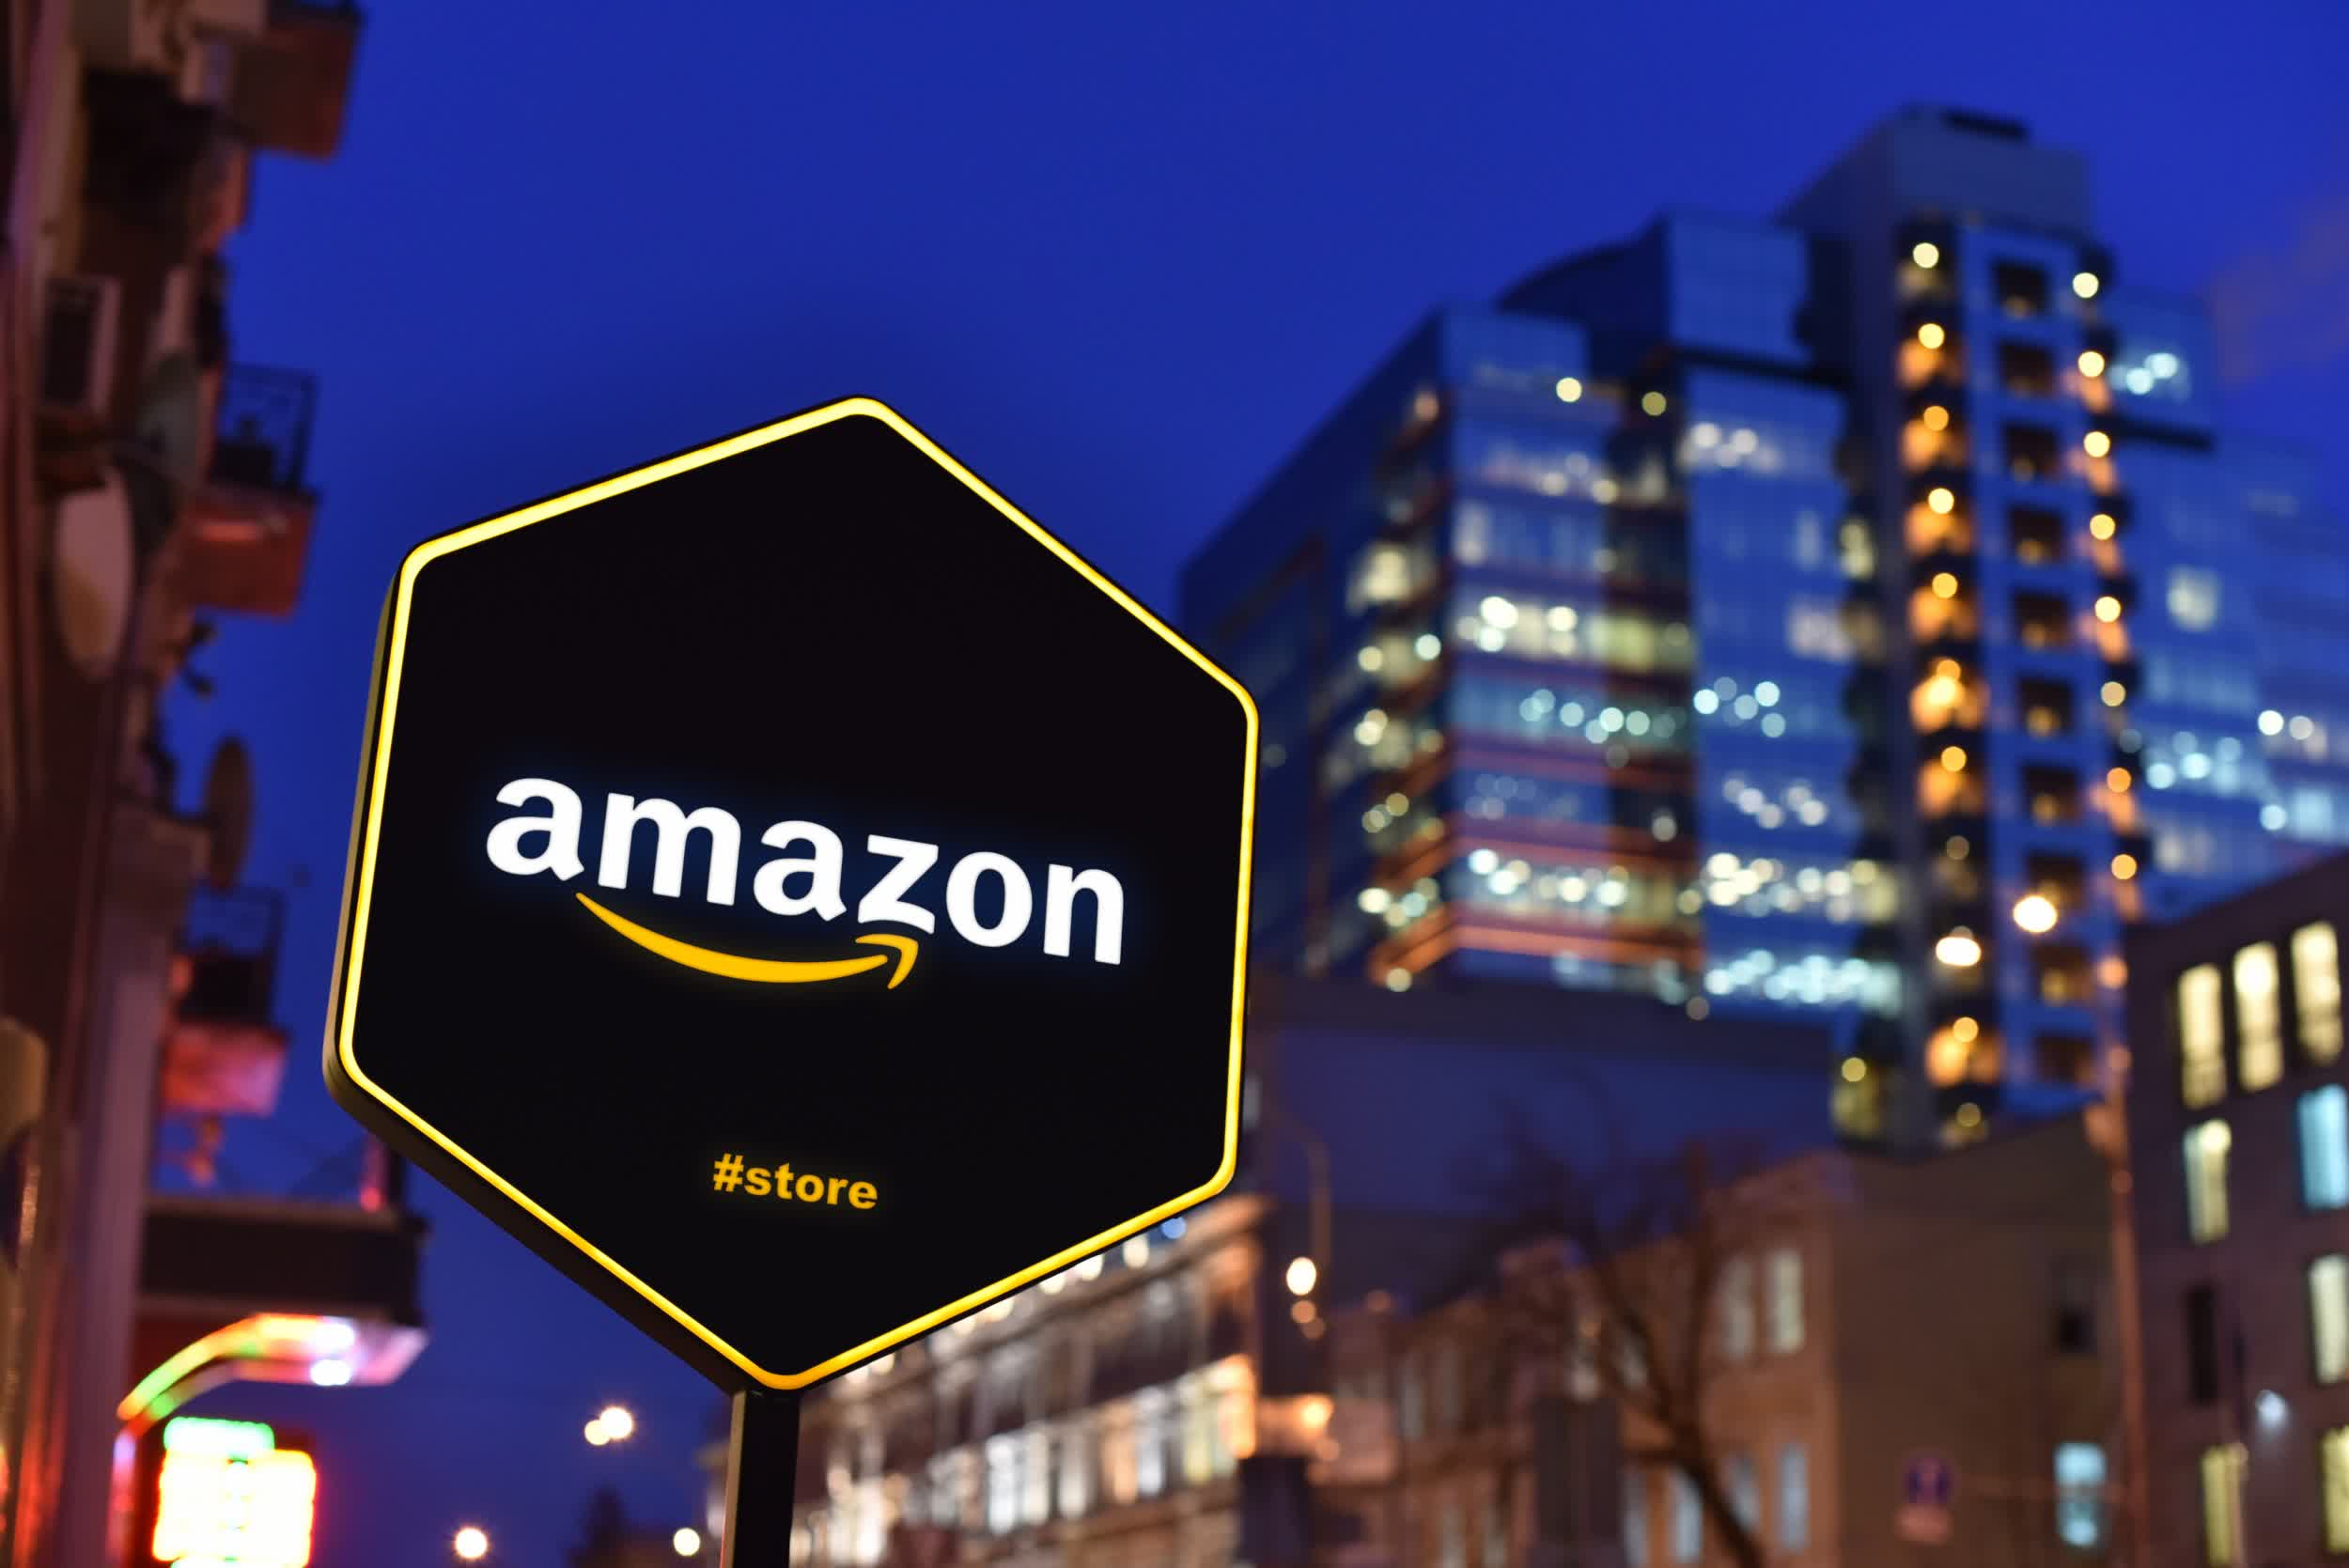 Amazon is planning to open larger retail locations to compete with department stores